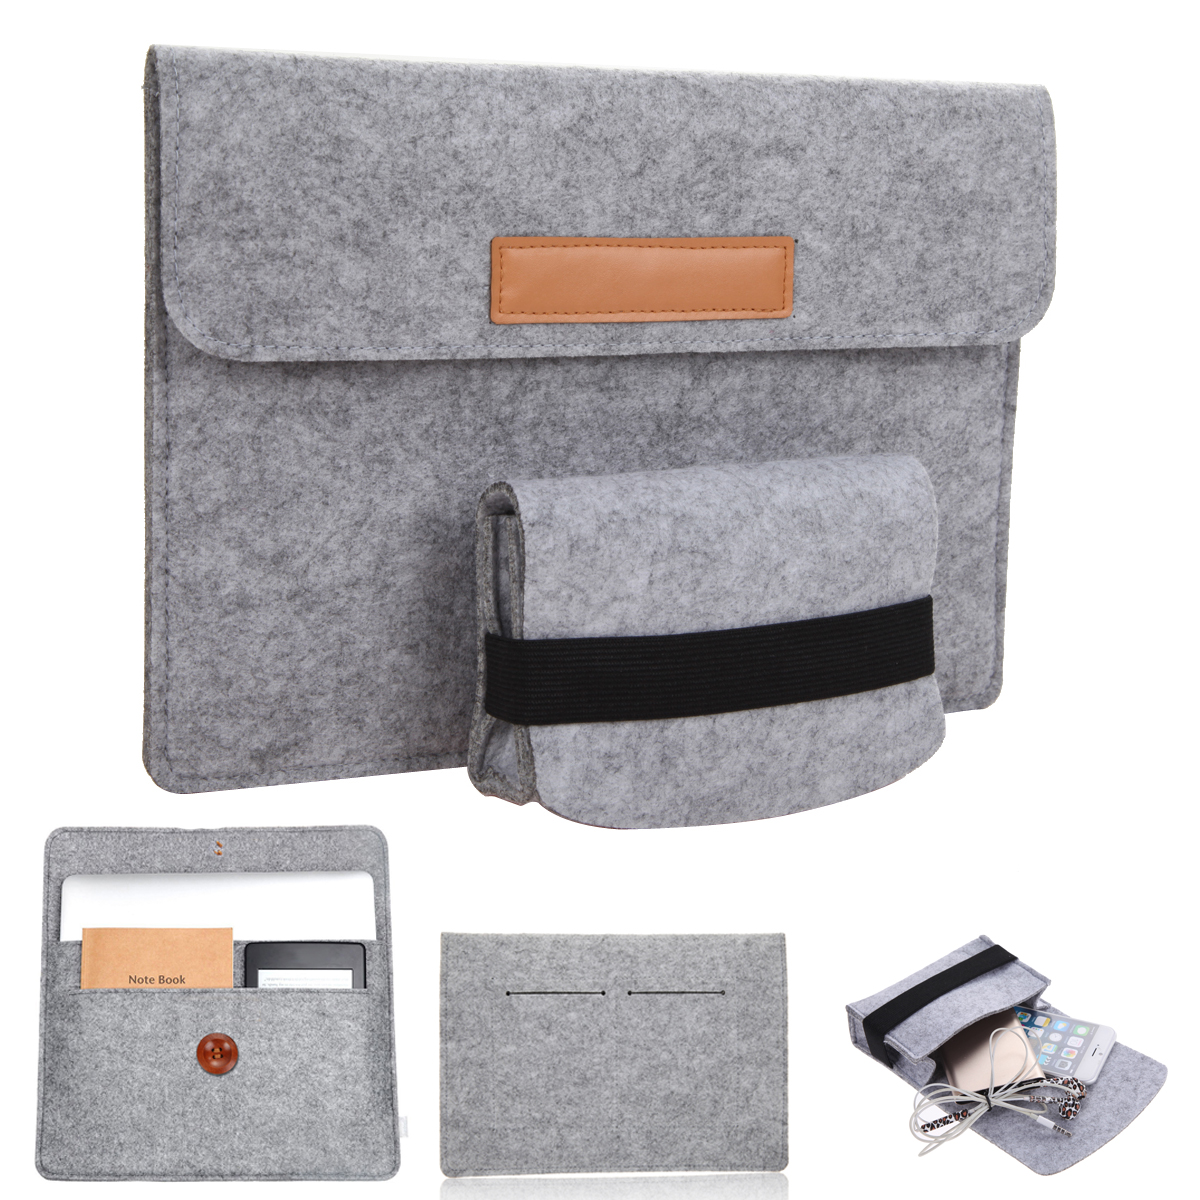 Portable durable net mesh laptop notebook tablet bag sleeve pouch cover case for iPad/Macbook Pro/Air 10''11''12''13(China (Mainland))